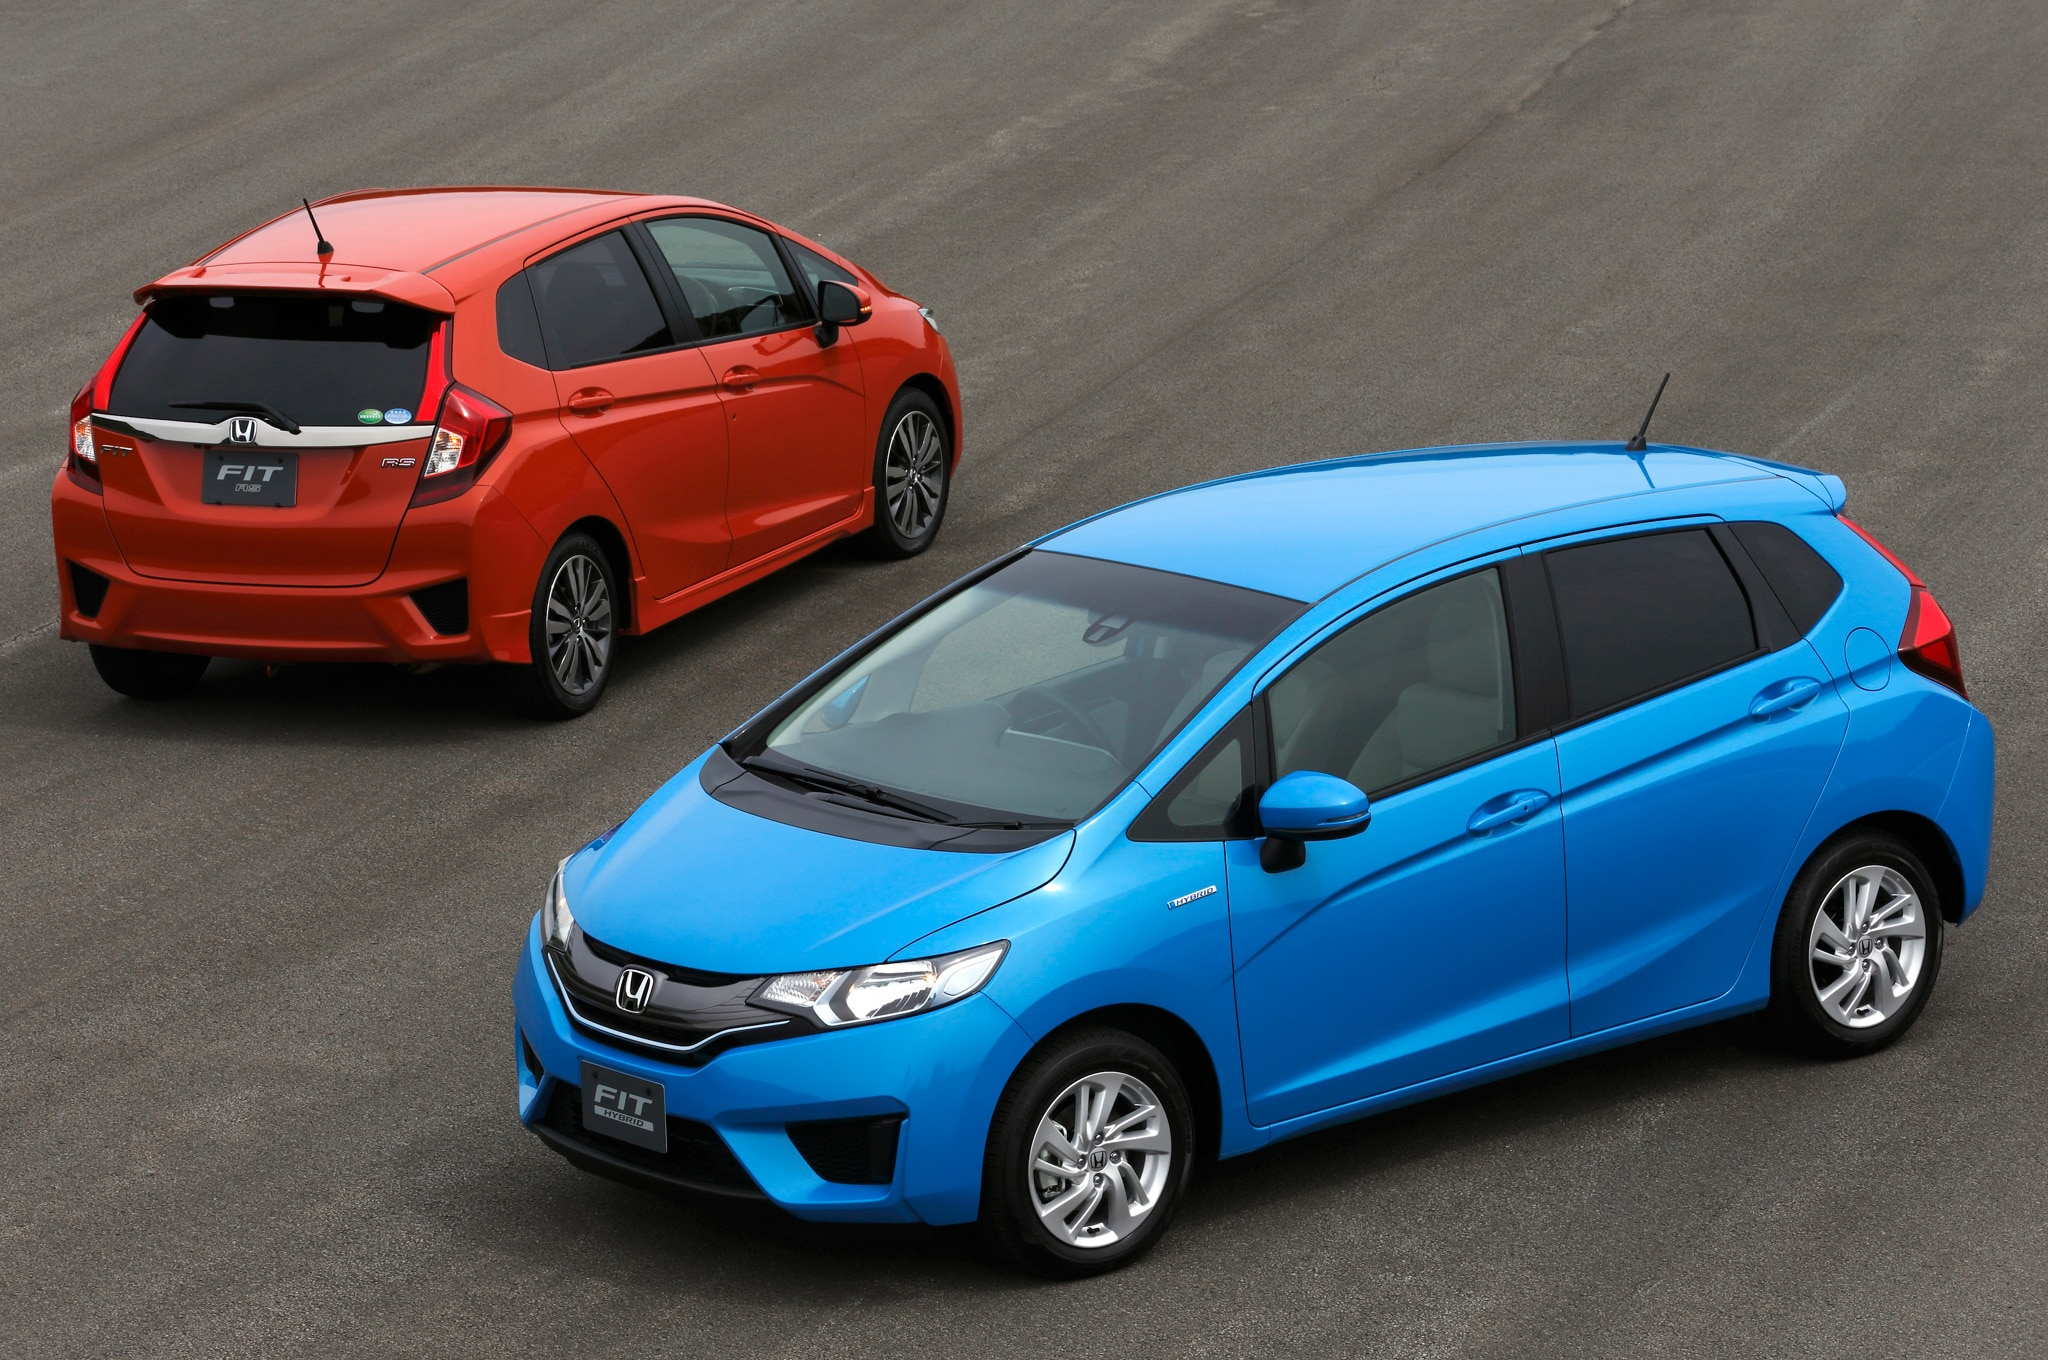 2014 Honda Fit Front And Rear Views1